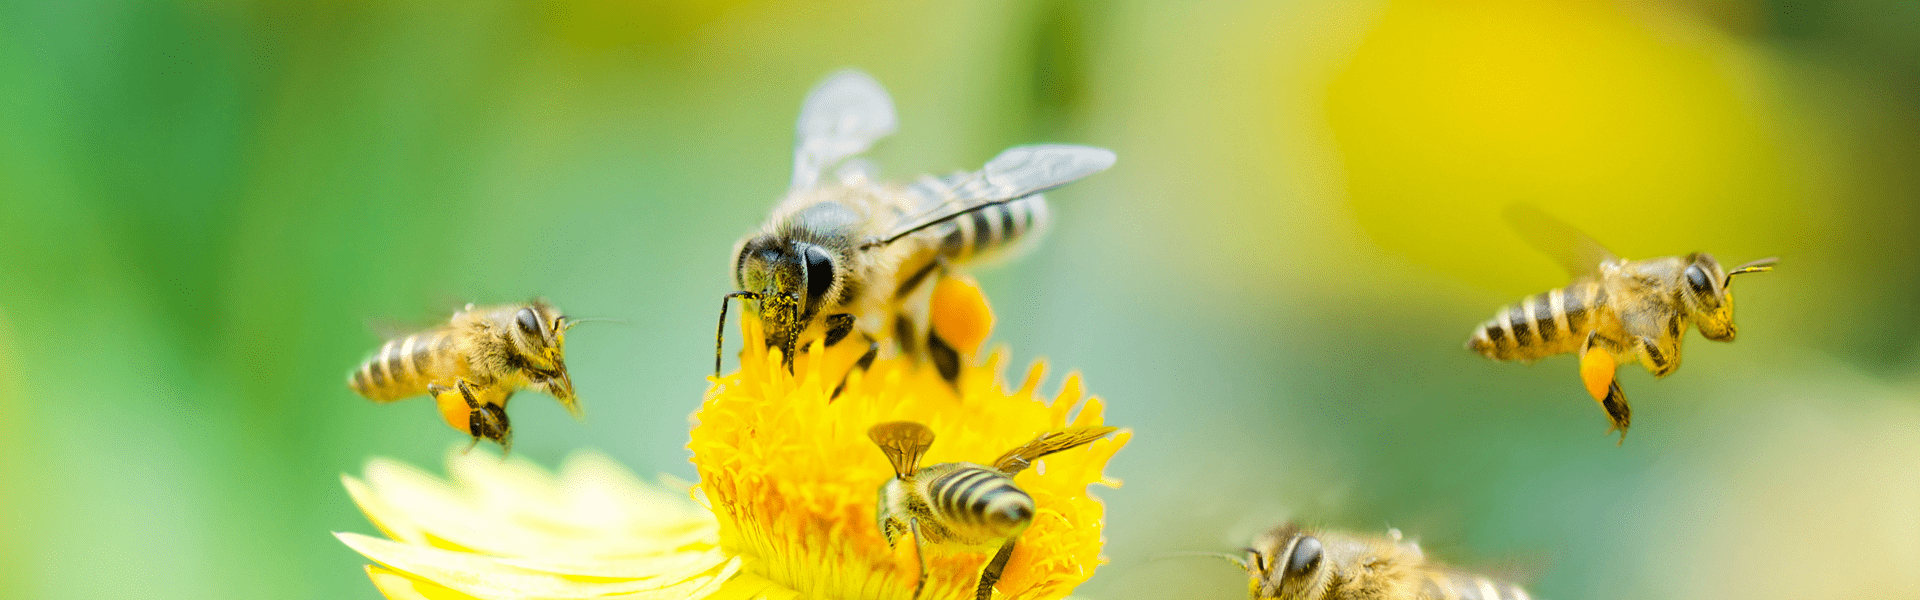 honey bees on a flower